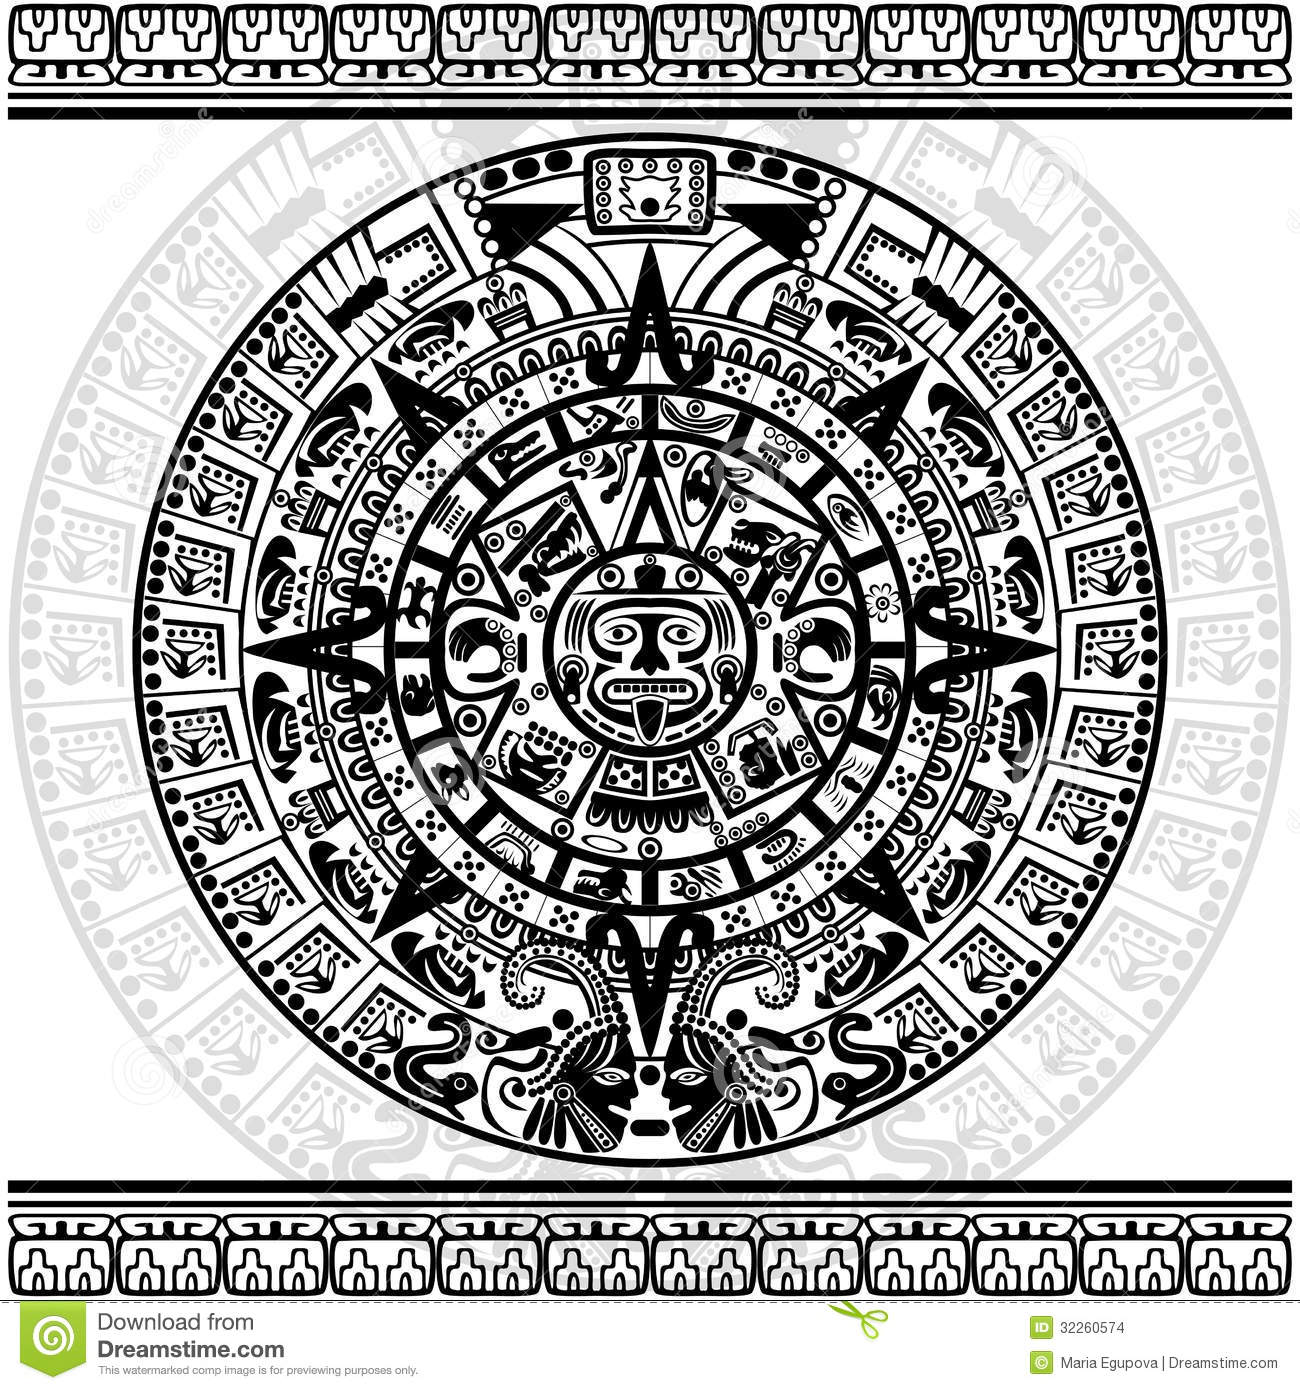 What does the mayan calendar look like